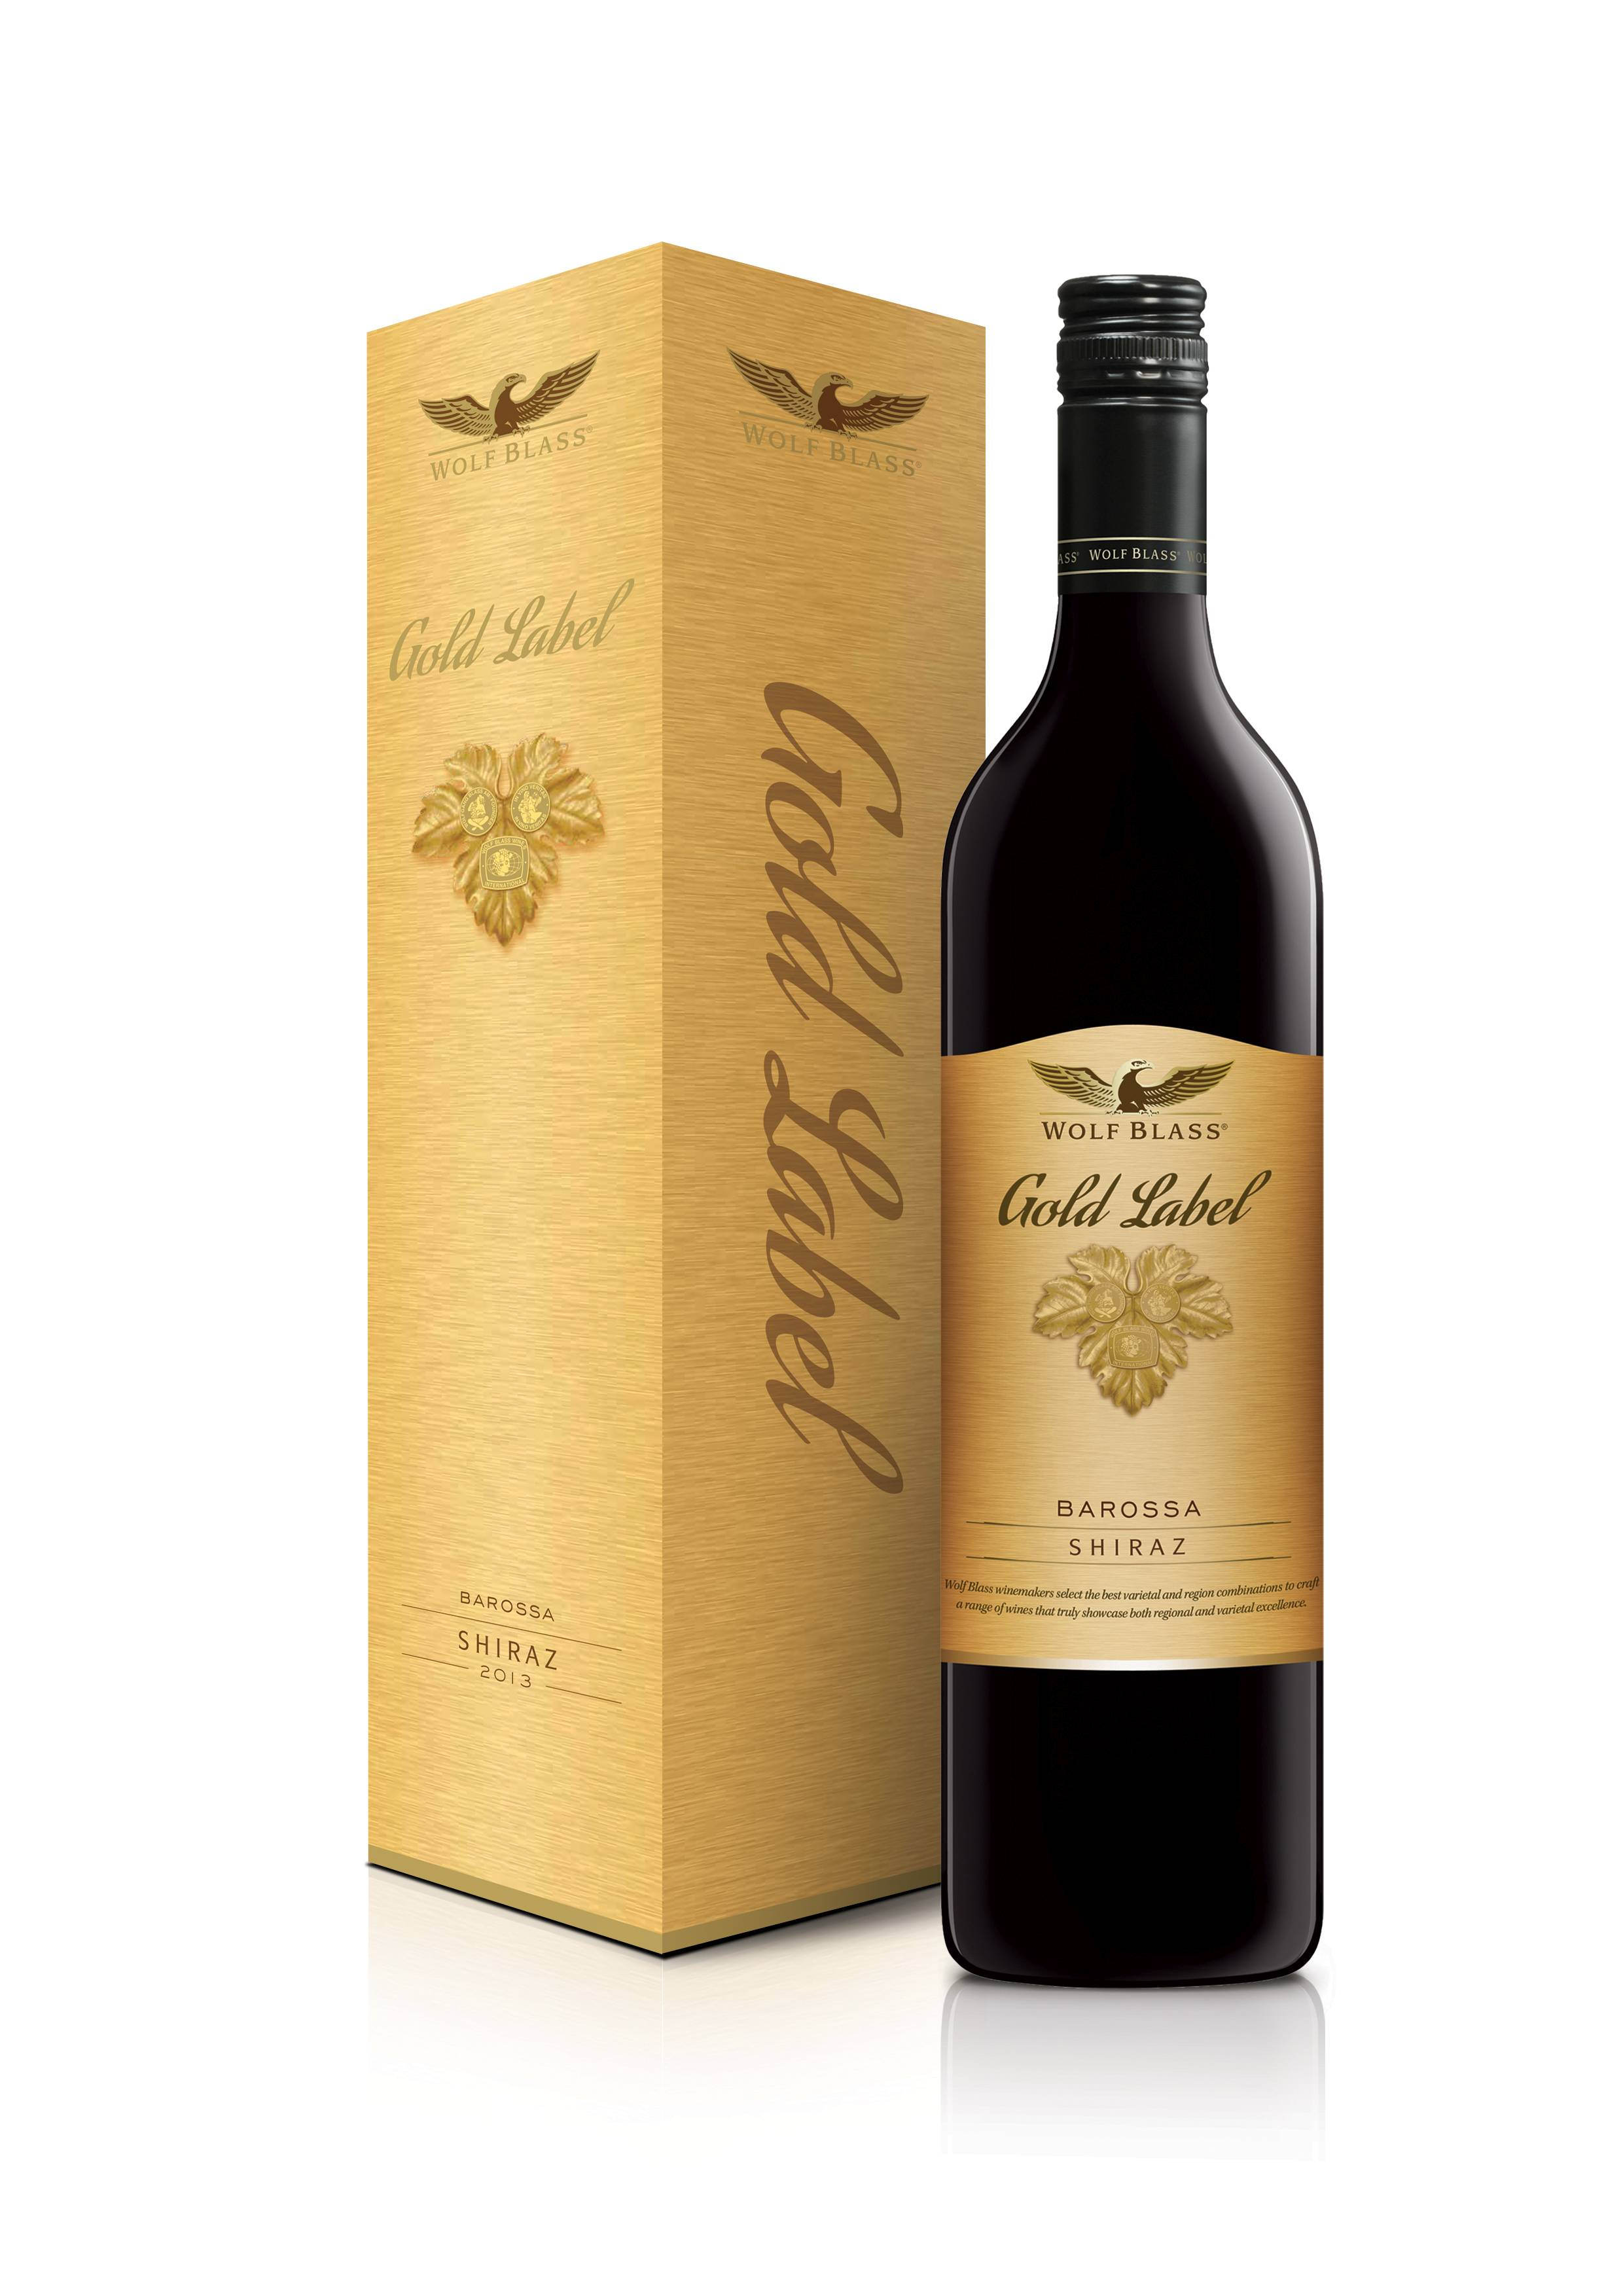 It is a graphic of Dynamite Wolf Blass Gold Label Shiraz 2015 Price